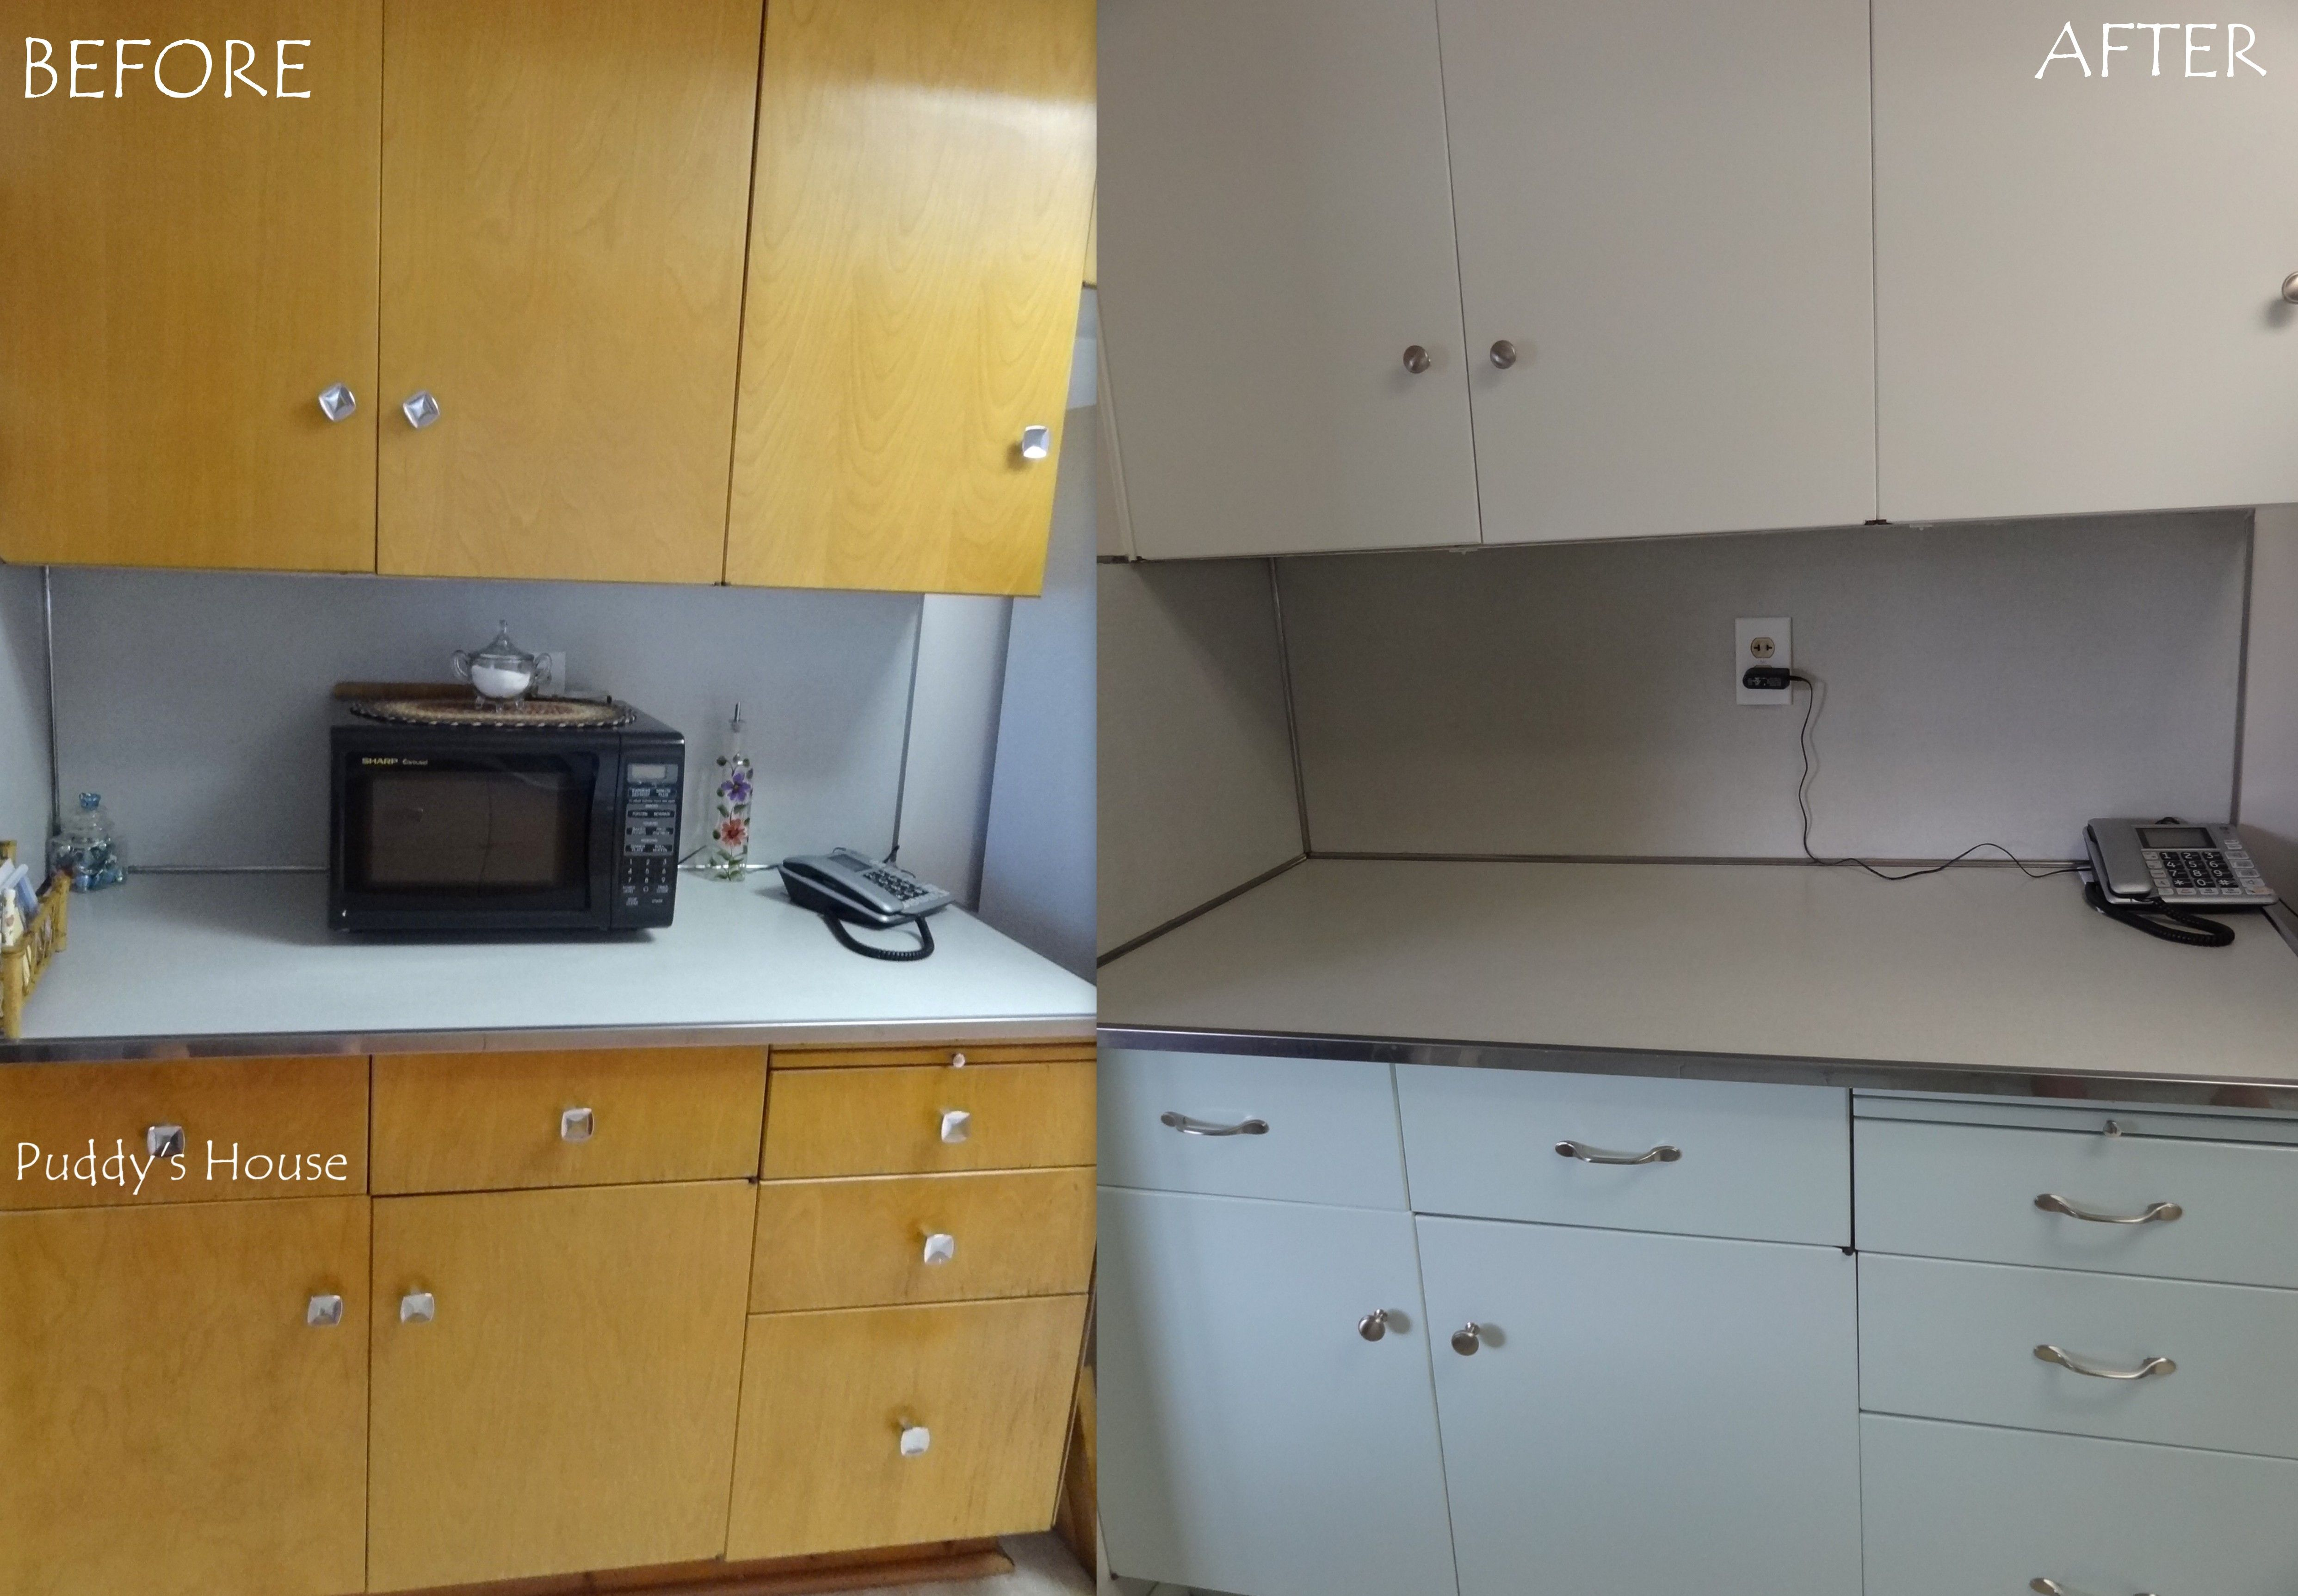 Kitchen Cabinet Makeovers Before And After Kitchen Cabinet Makeovers Before And After  Kitchen Cabinets